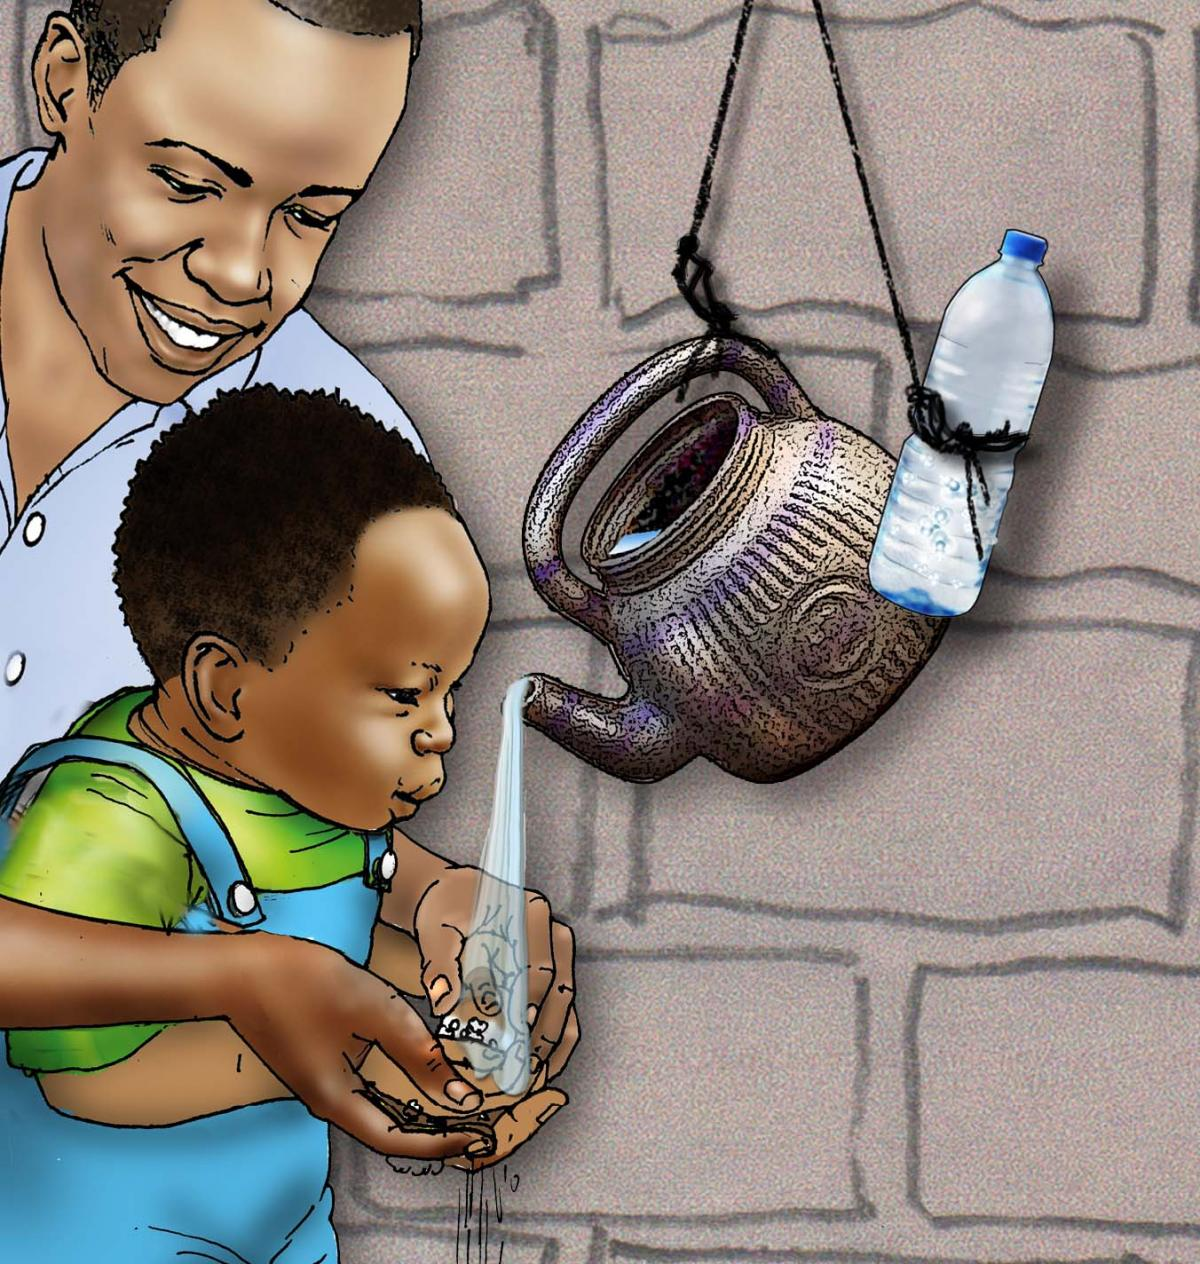 Father Support - Father washing baby's hands - 03A - Niger